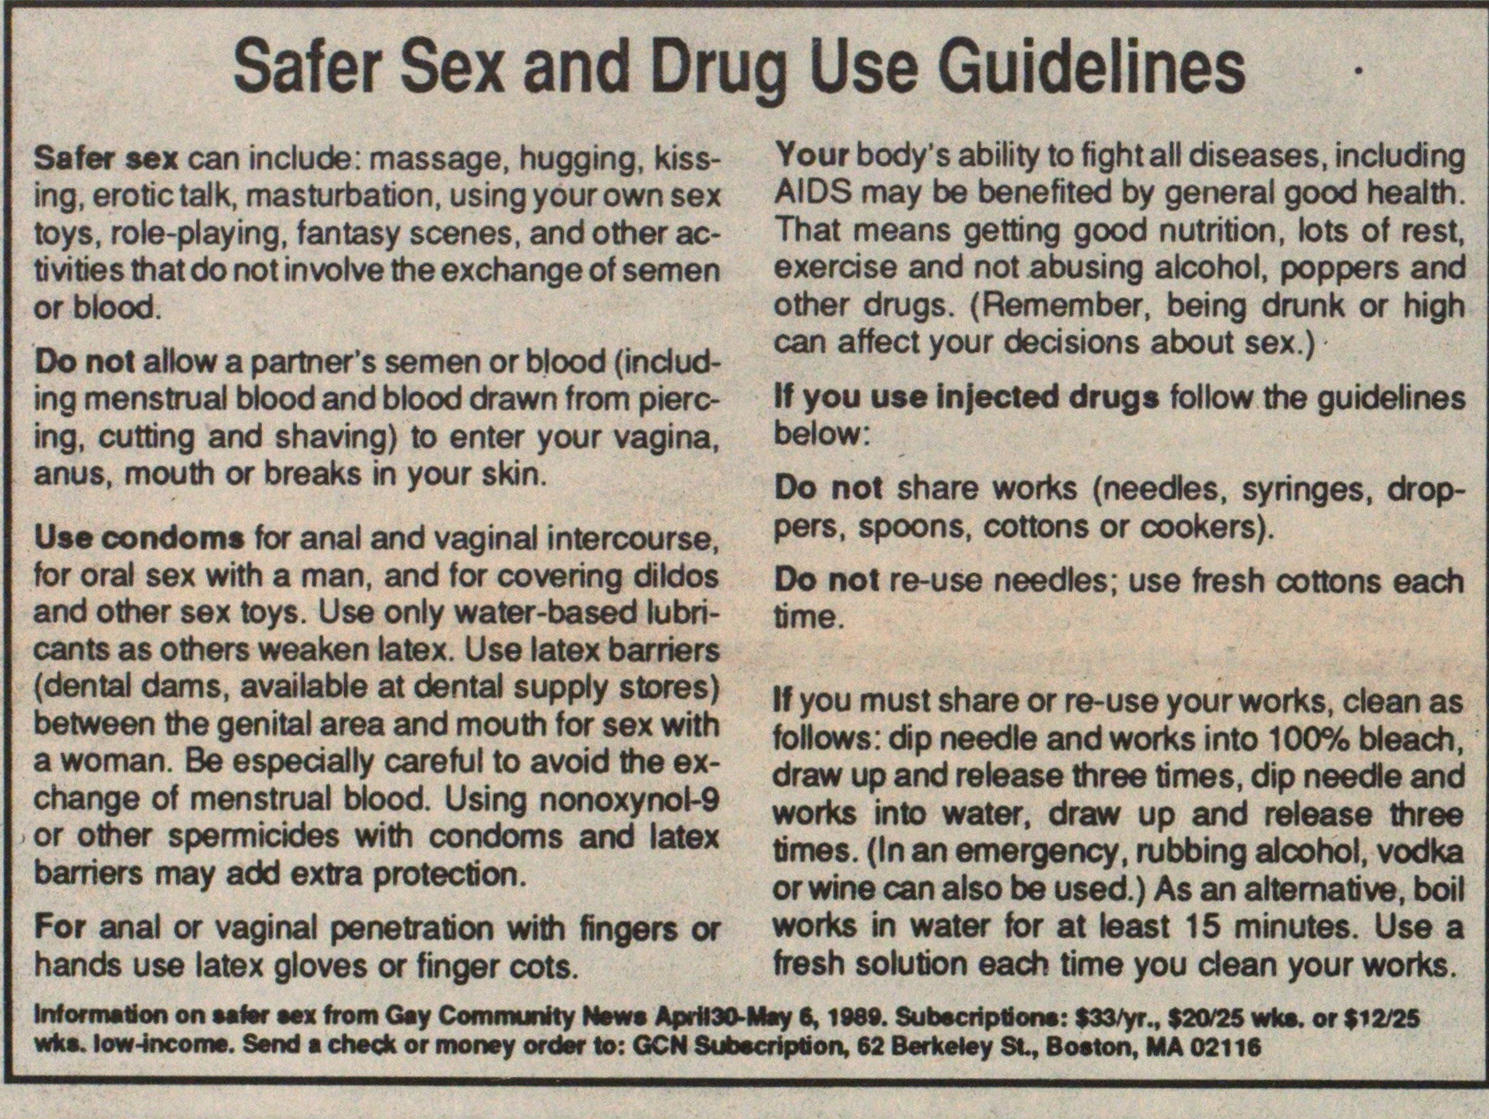 Safer Sex And Drug Use Guidelines image